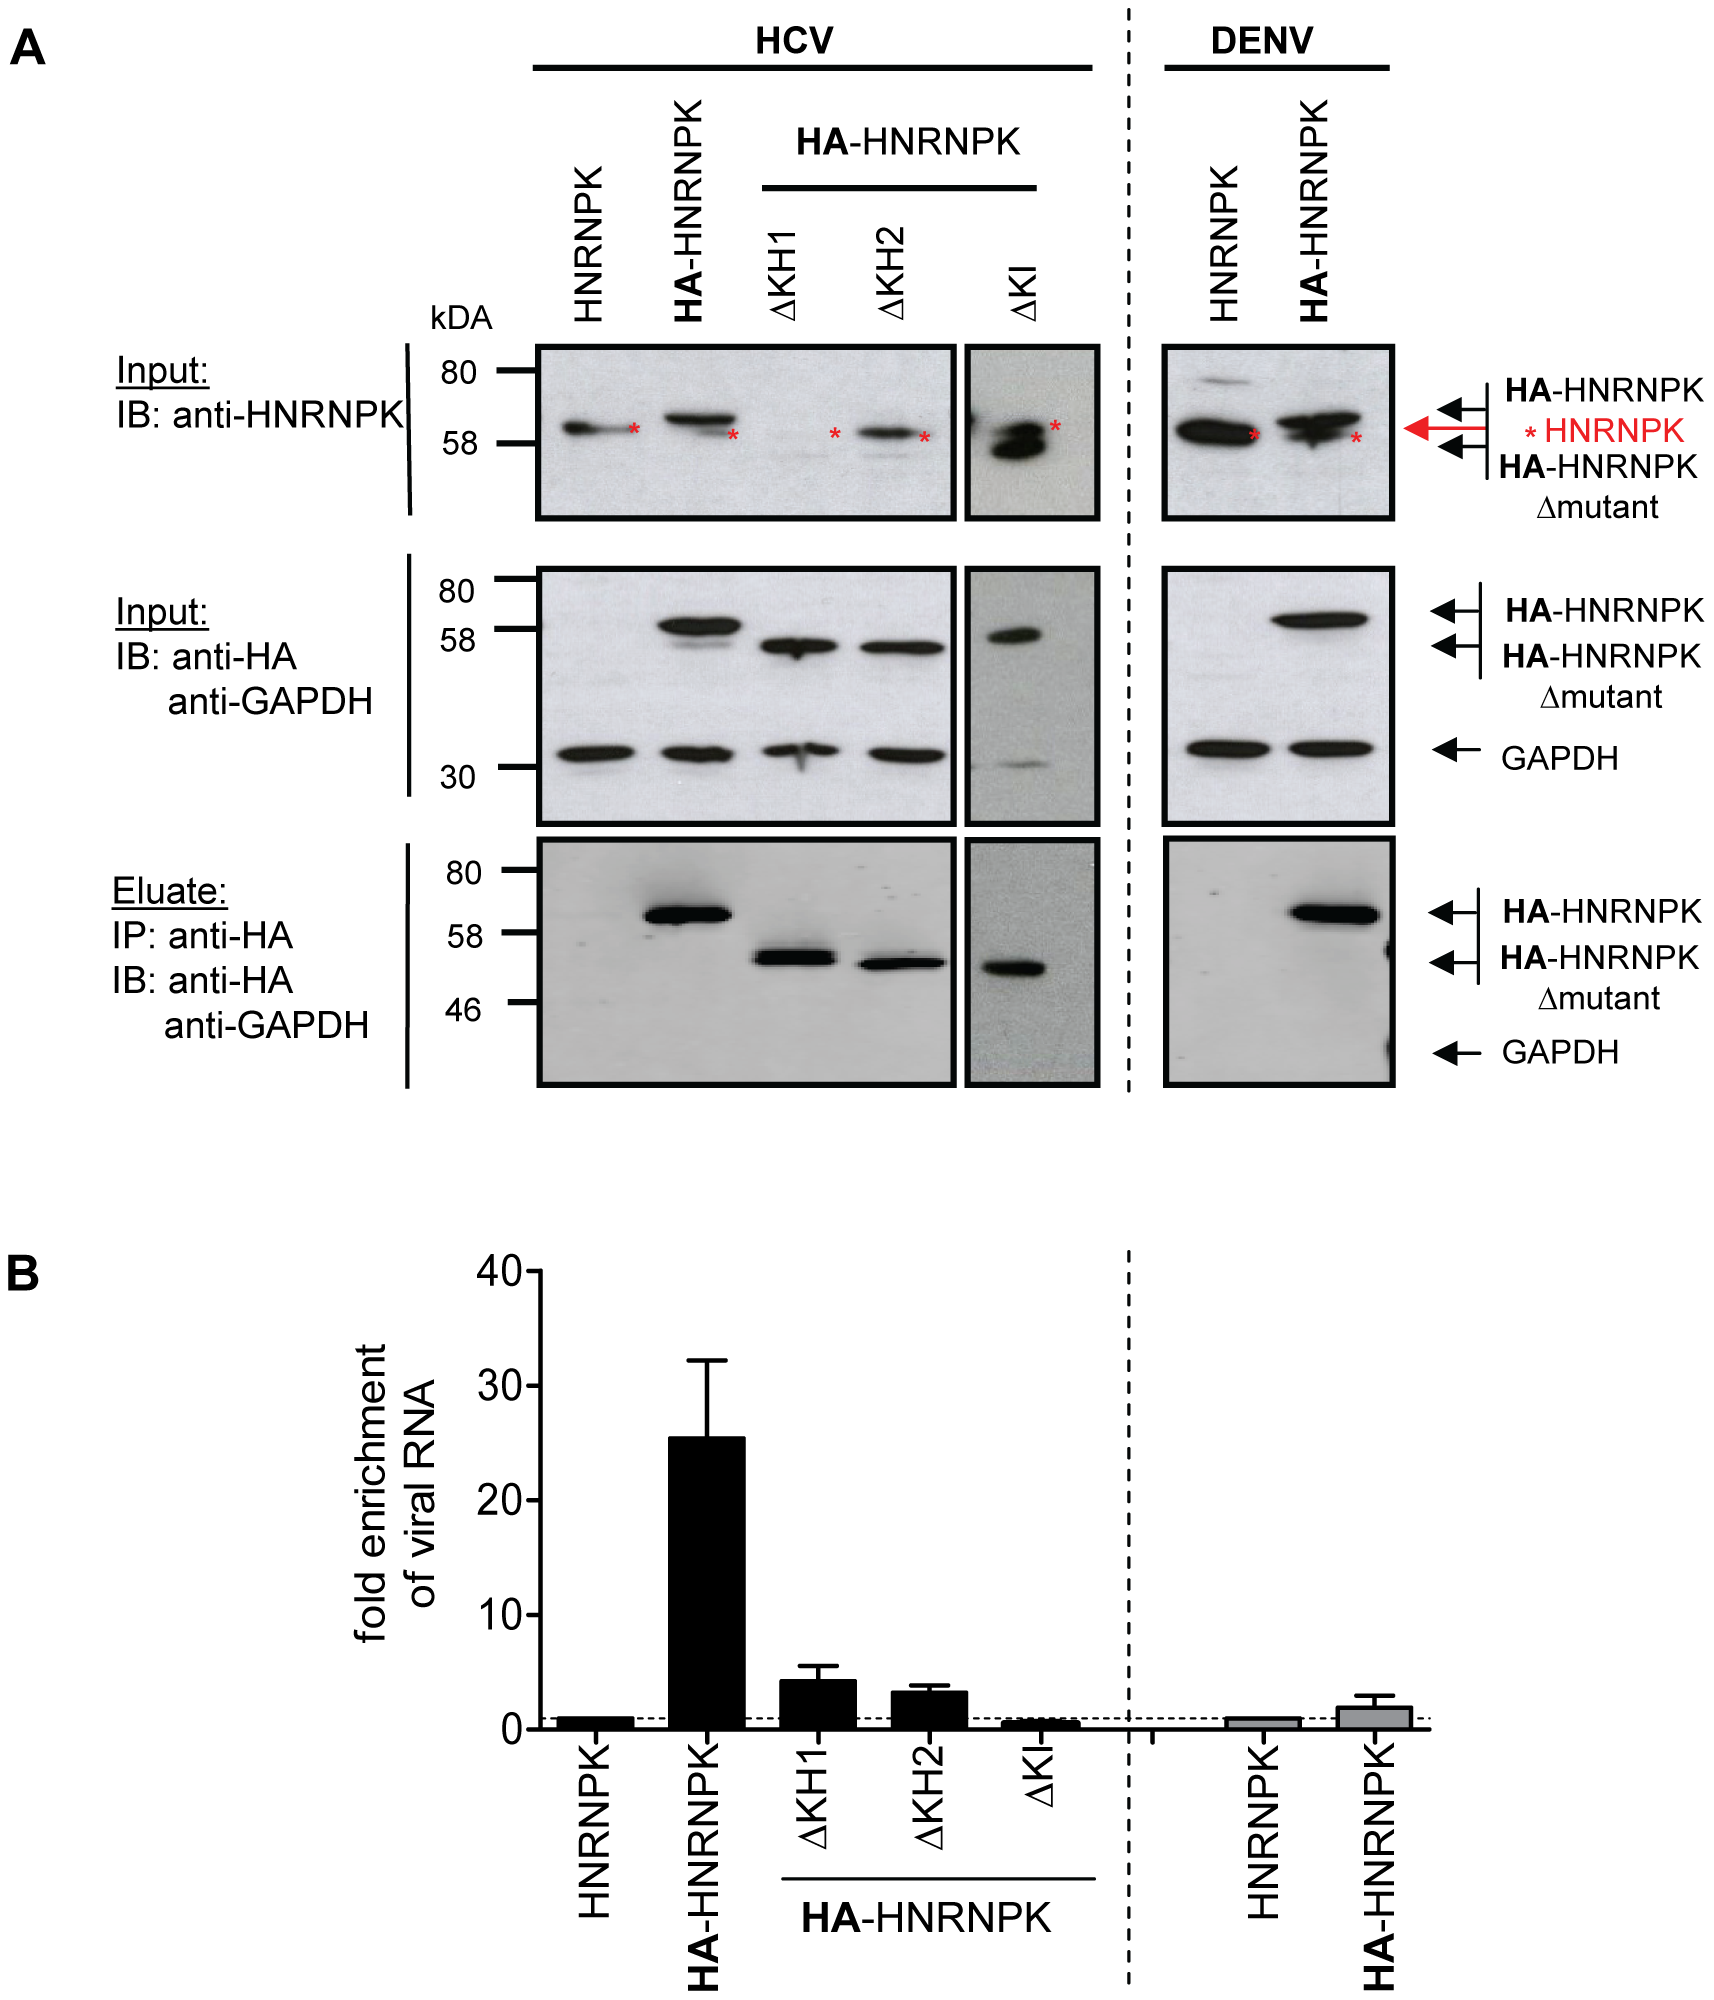 HNRNPK interacts with HCV but not DENV RNA genomes.